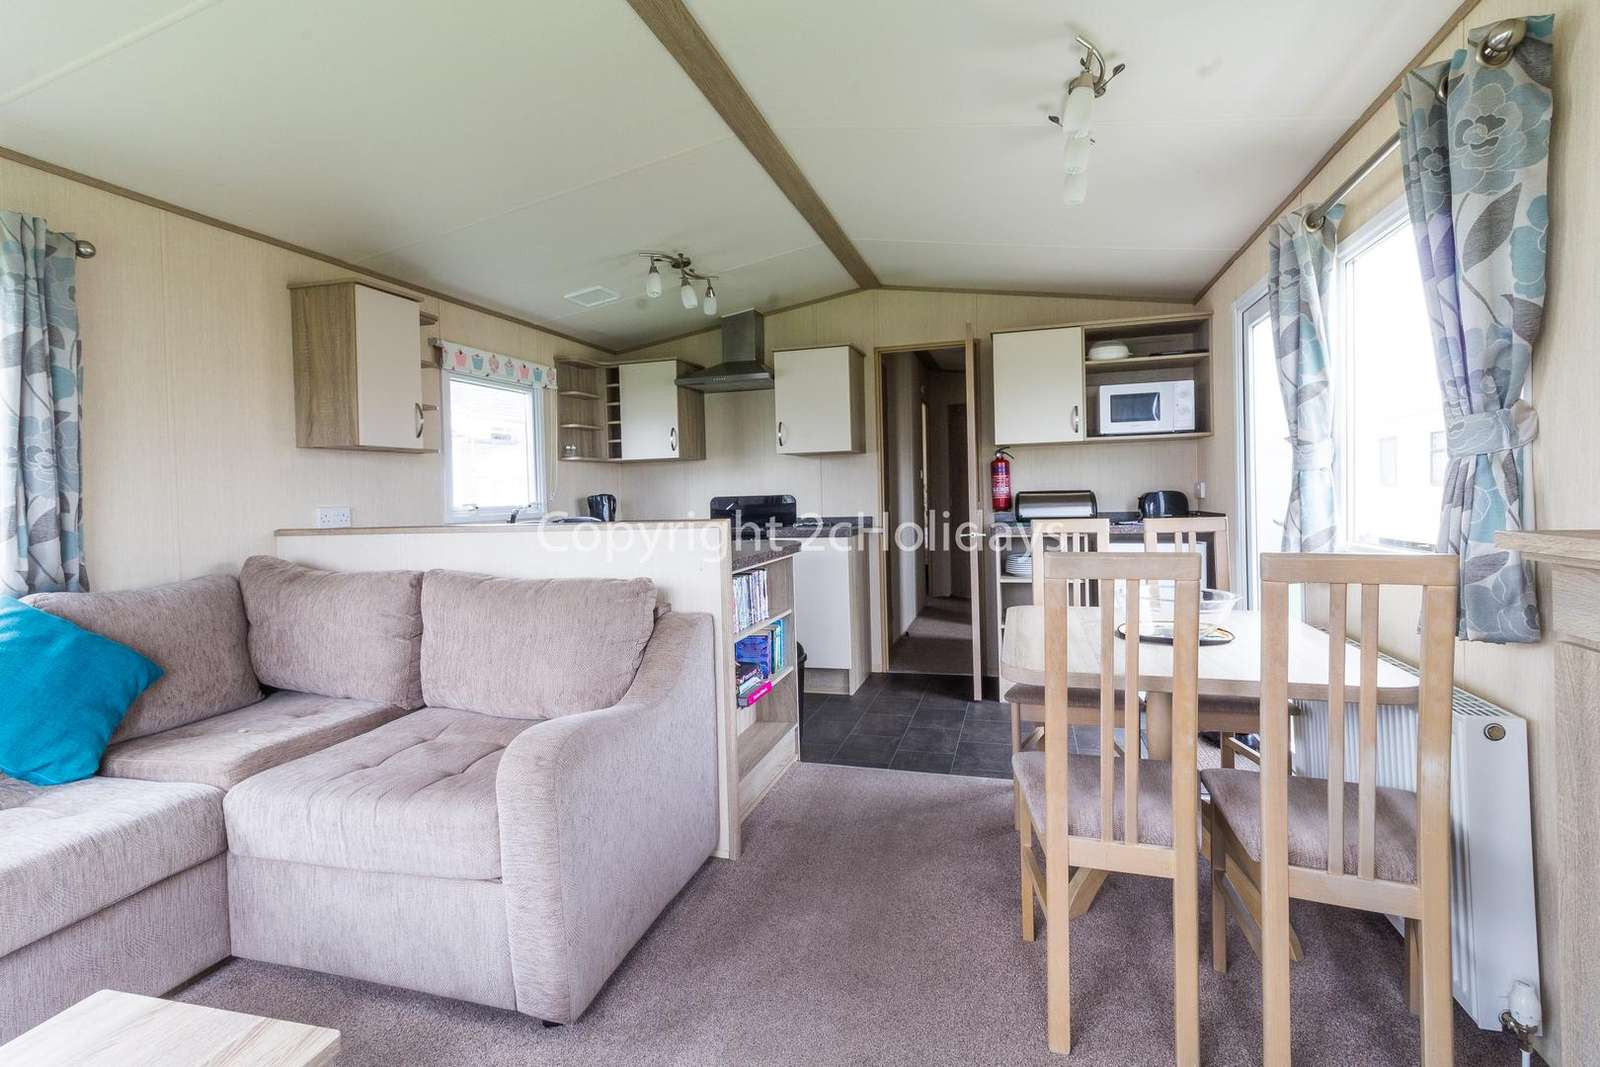 Spacious and open plan lounge, kitchen/dining area